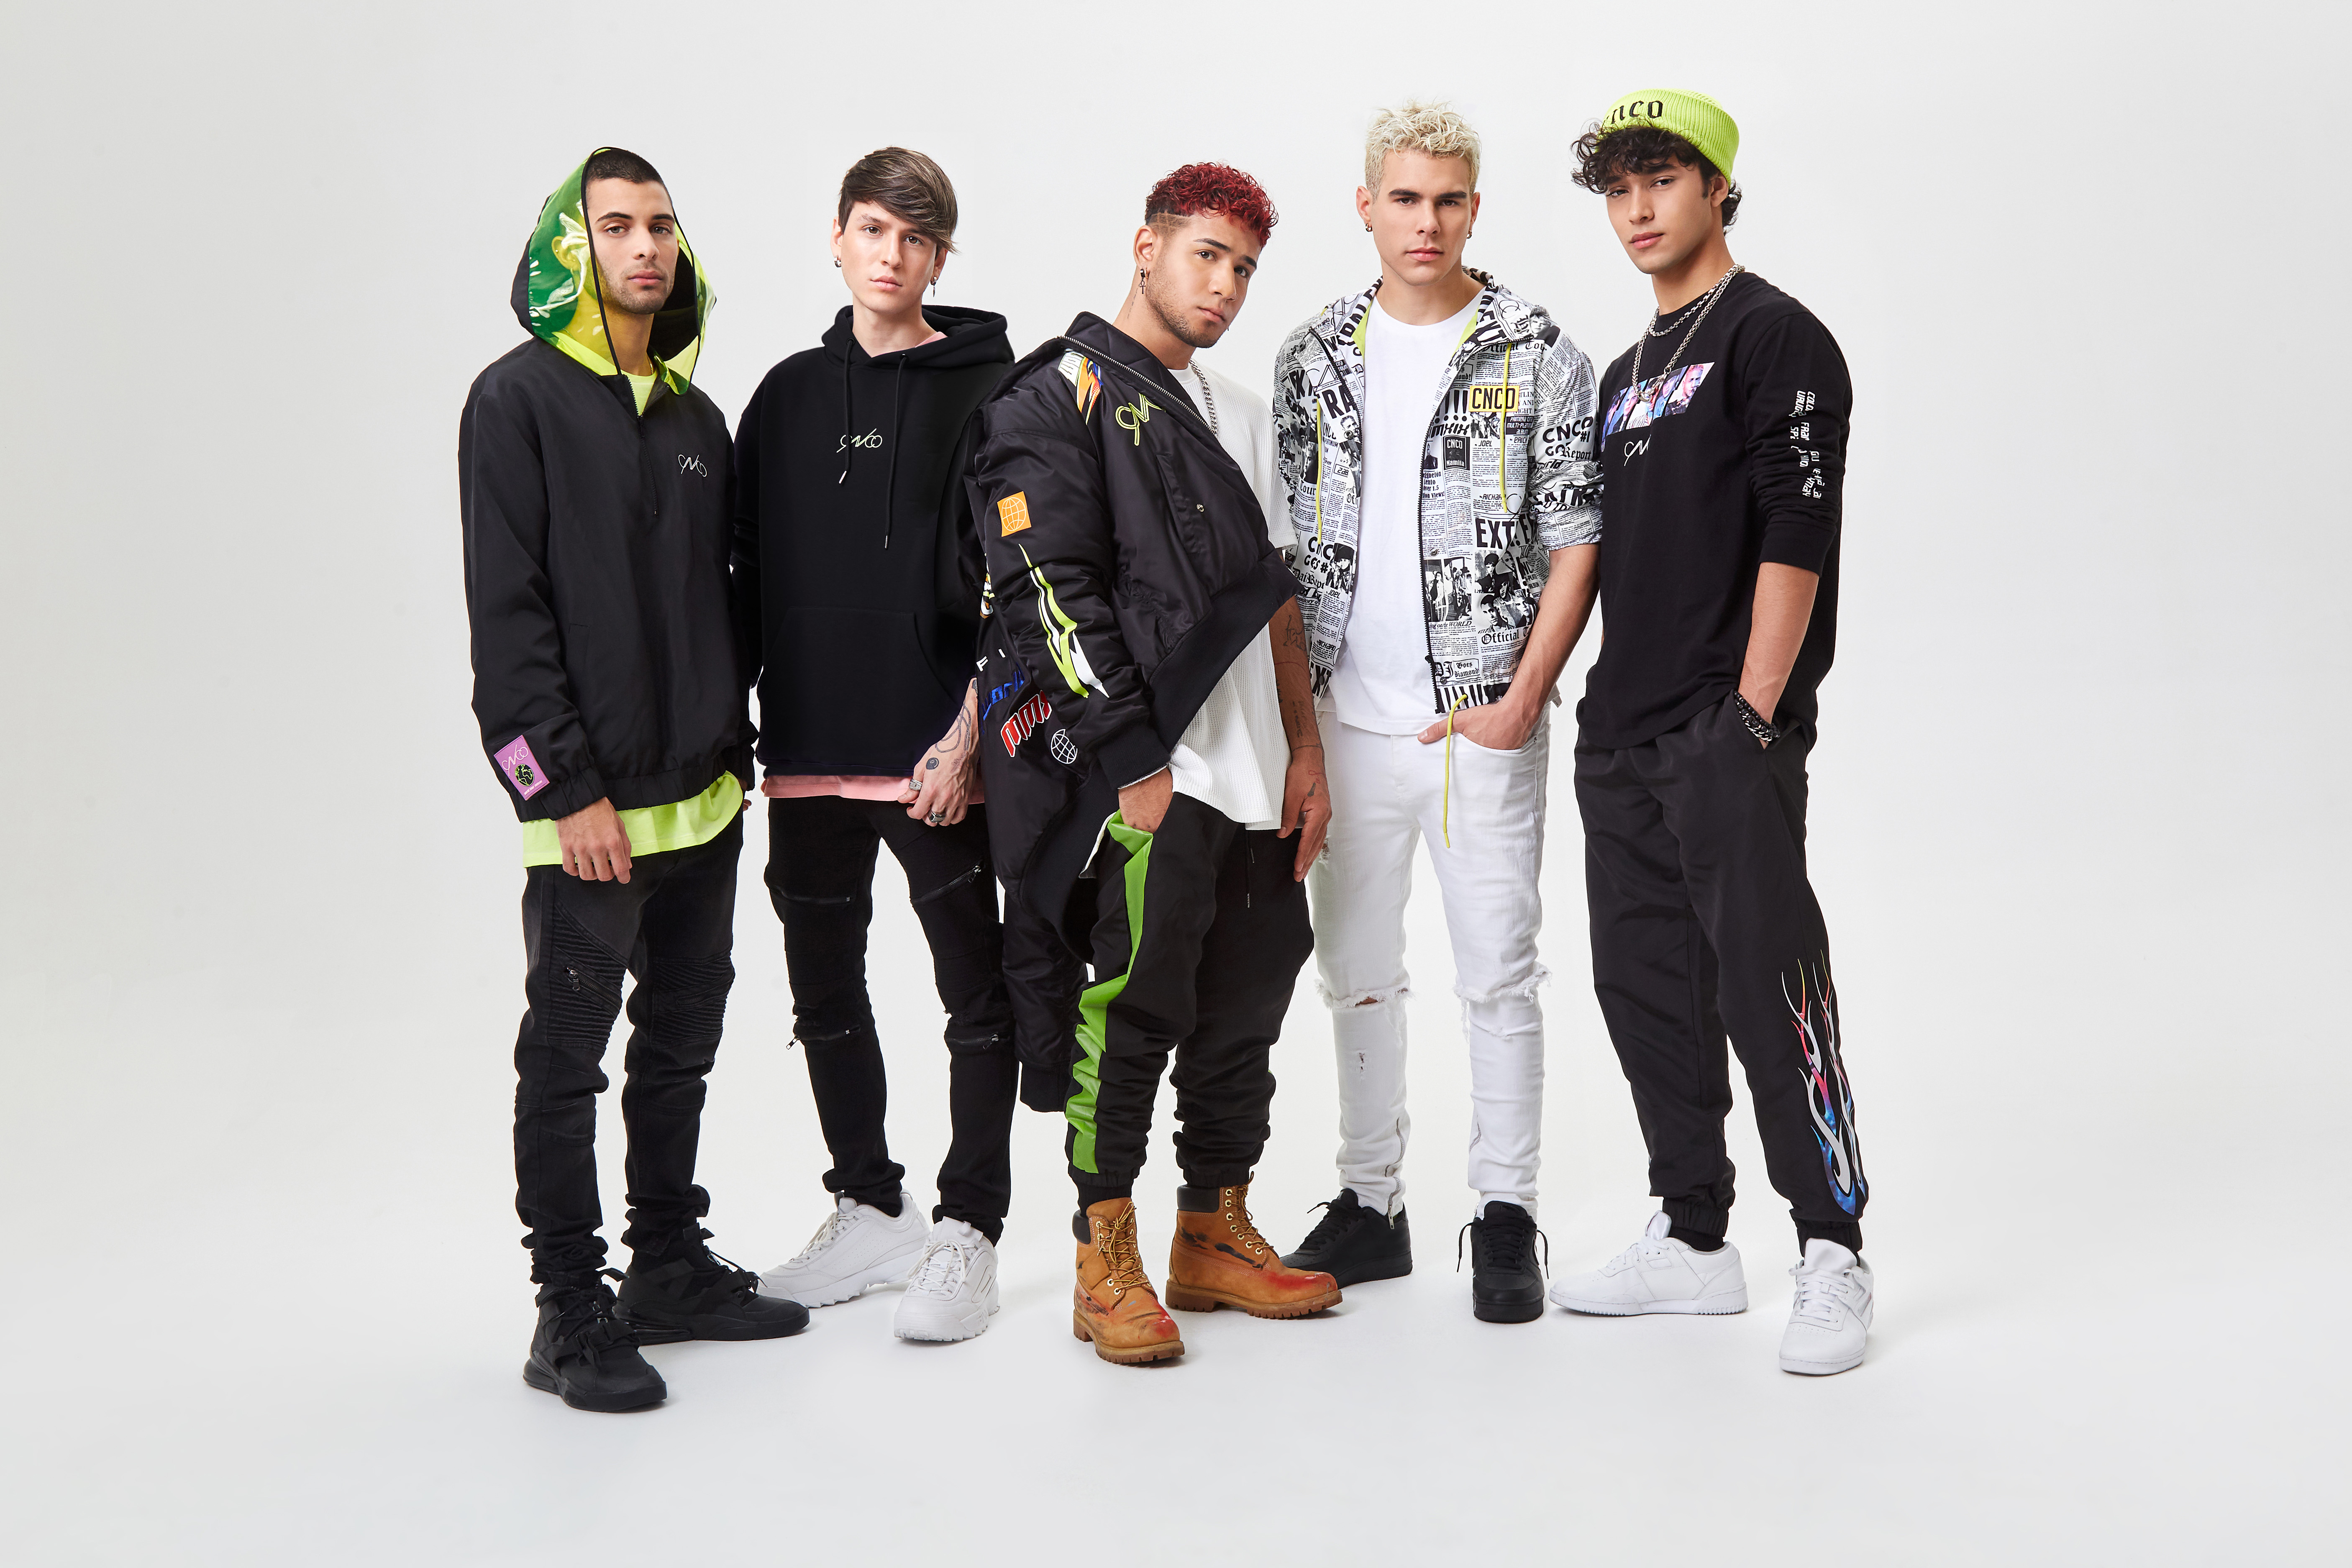 CNCO in the Forever 21 x CNCO collection